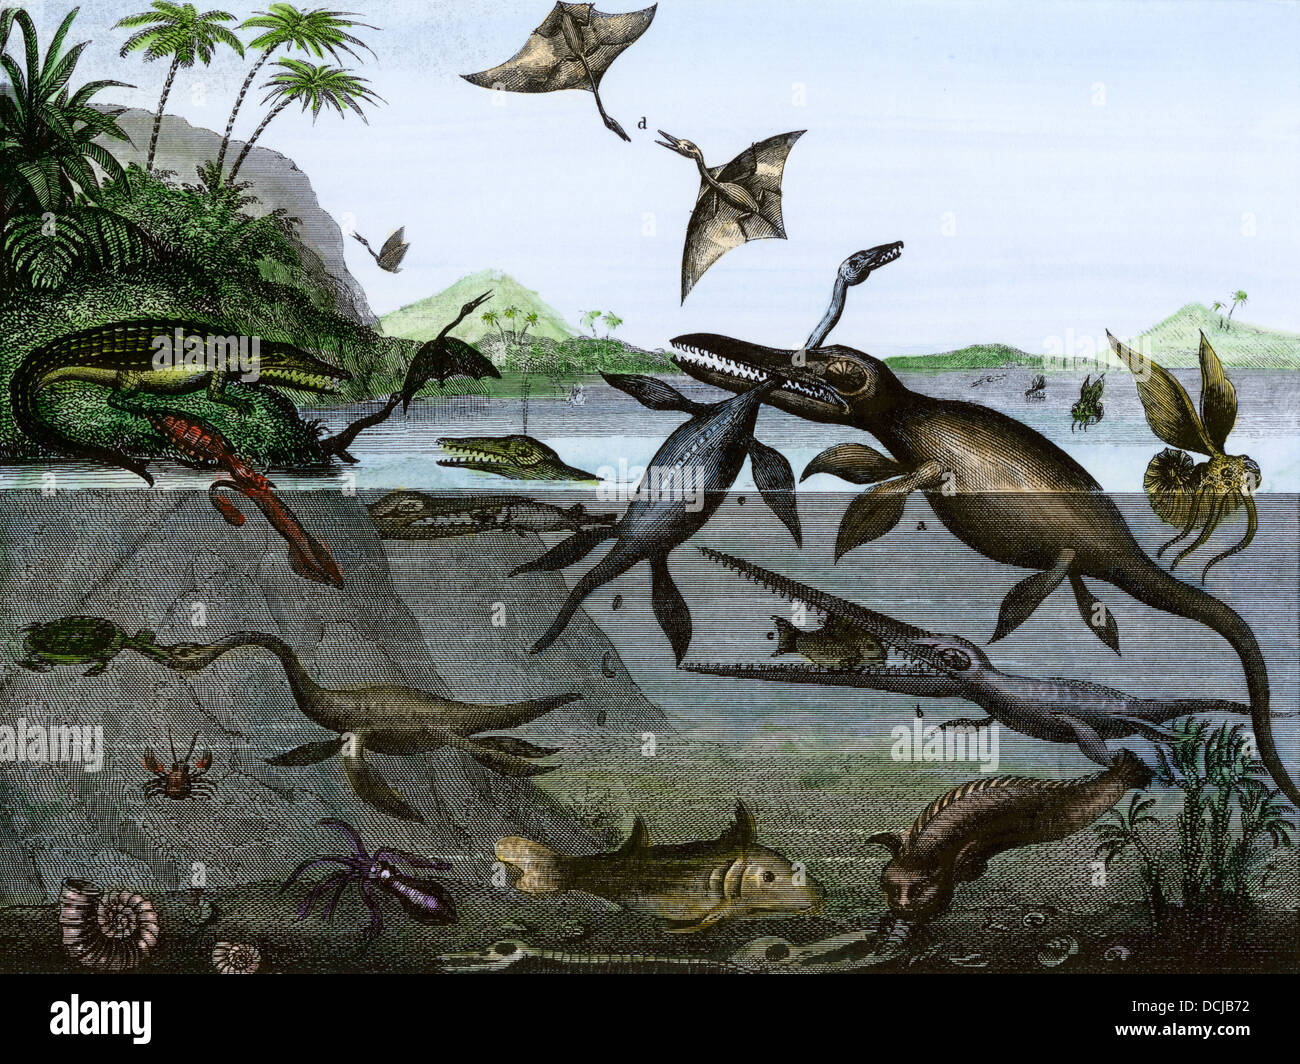 Dinosaurs of the sea, land, and air during the Age of Reptiles, a 19th-century depiction. Hand-colored engraving - Stock Image